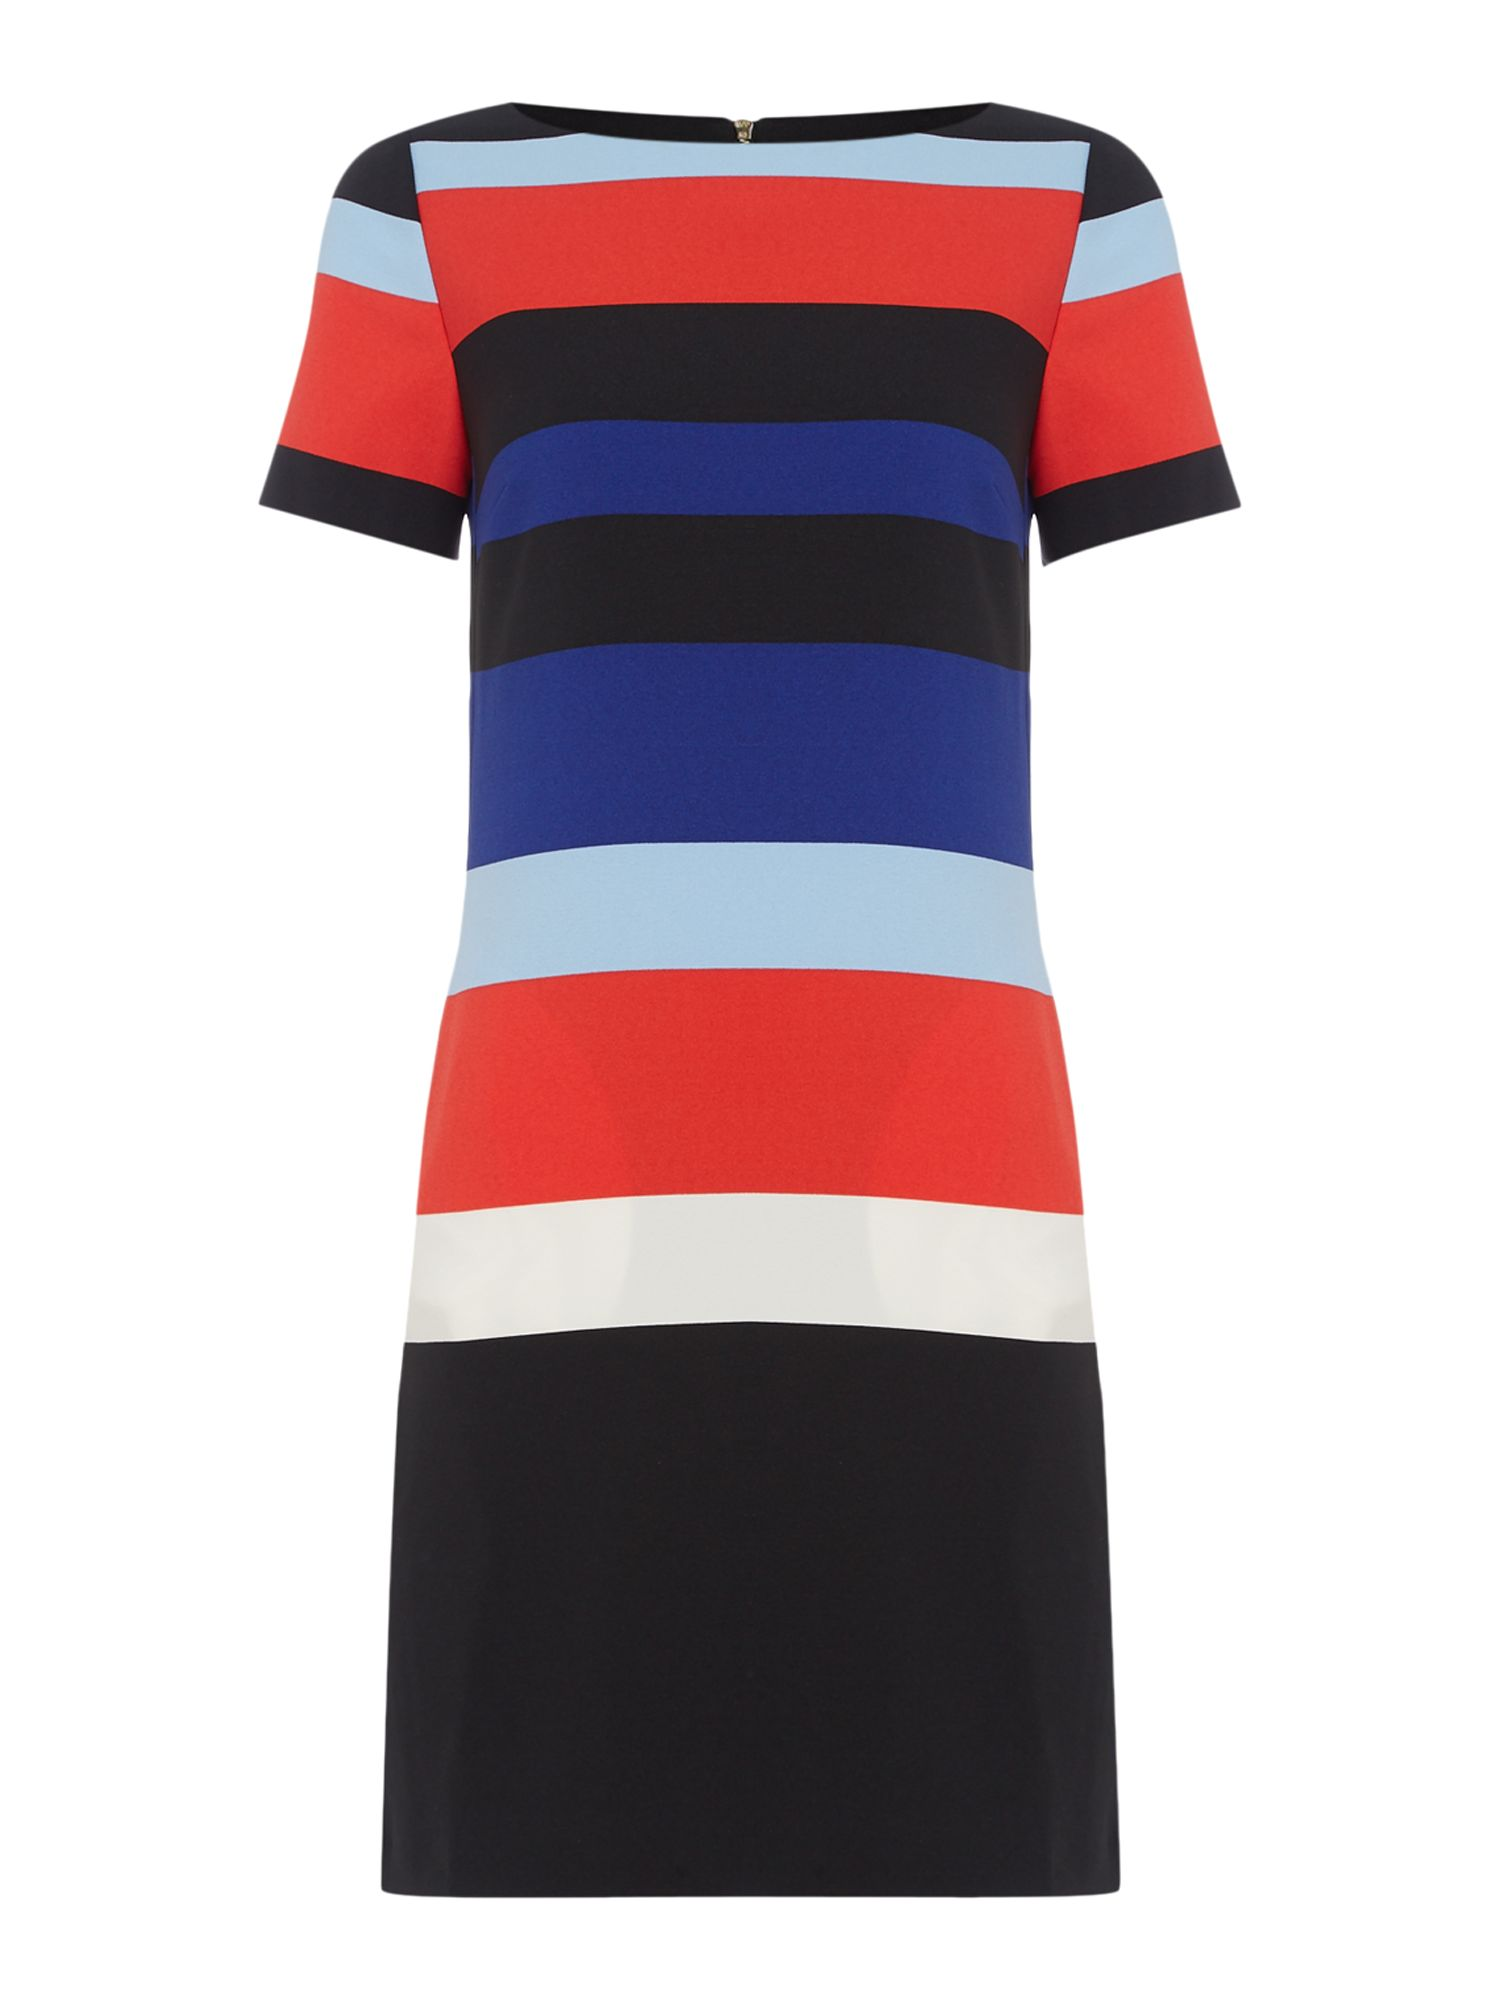 Tahari ASL Vibrant Bold Stripes Shift Dress, Multi-Coloured